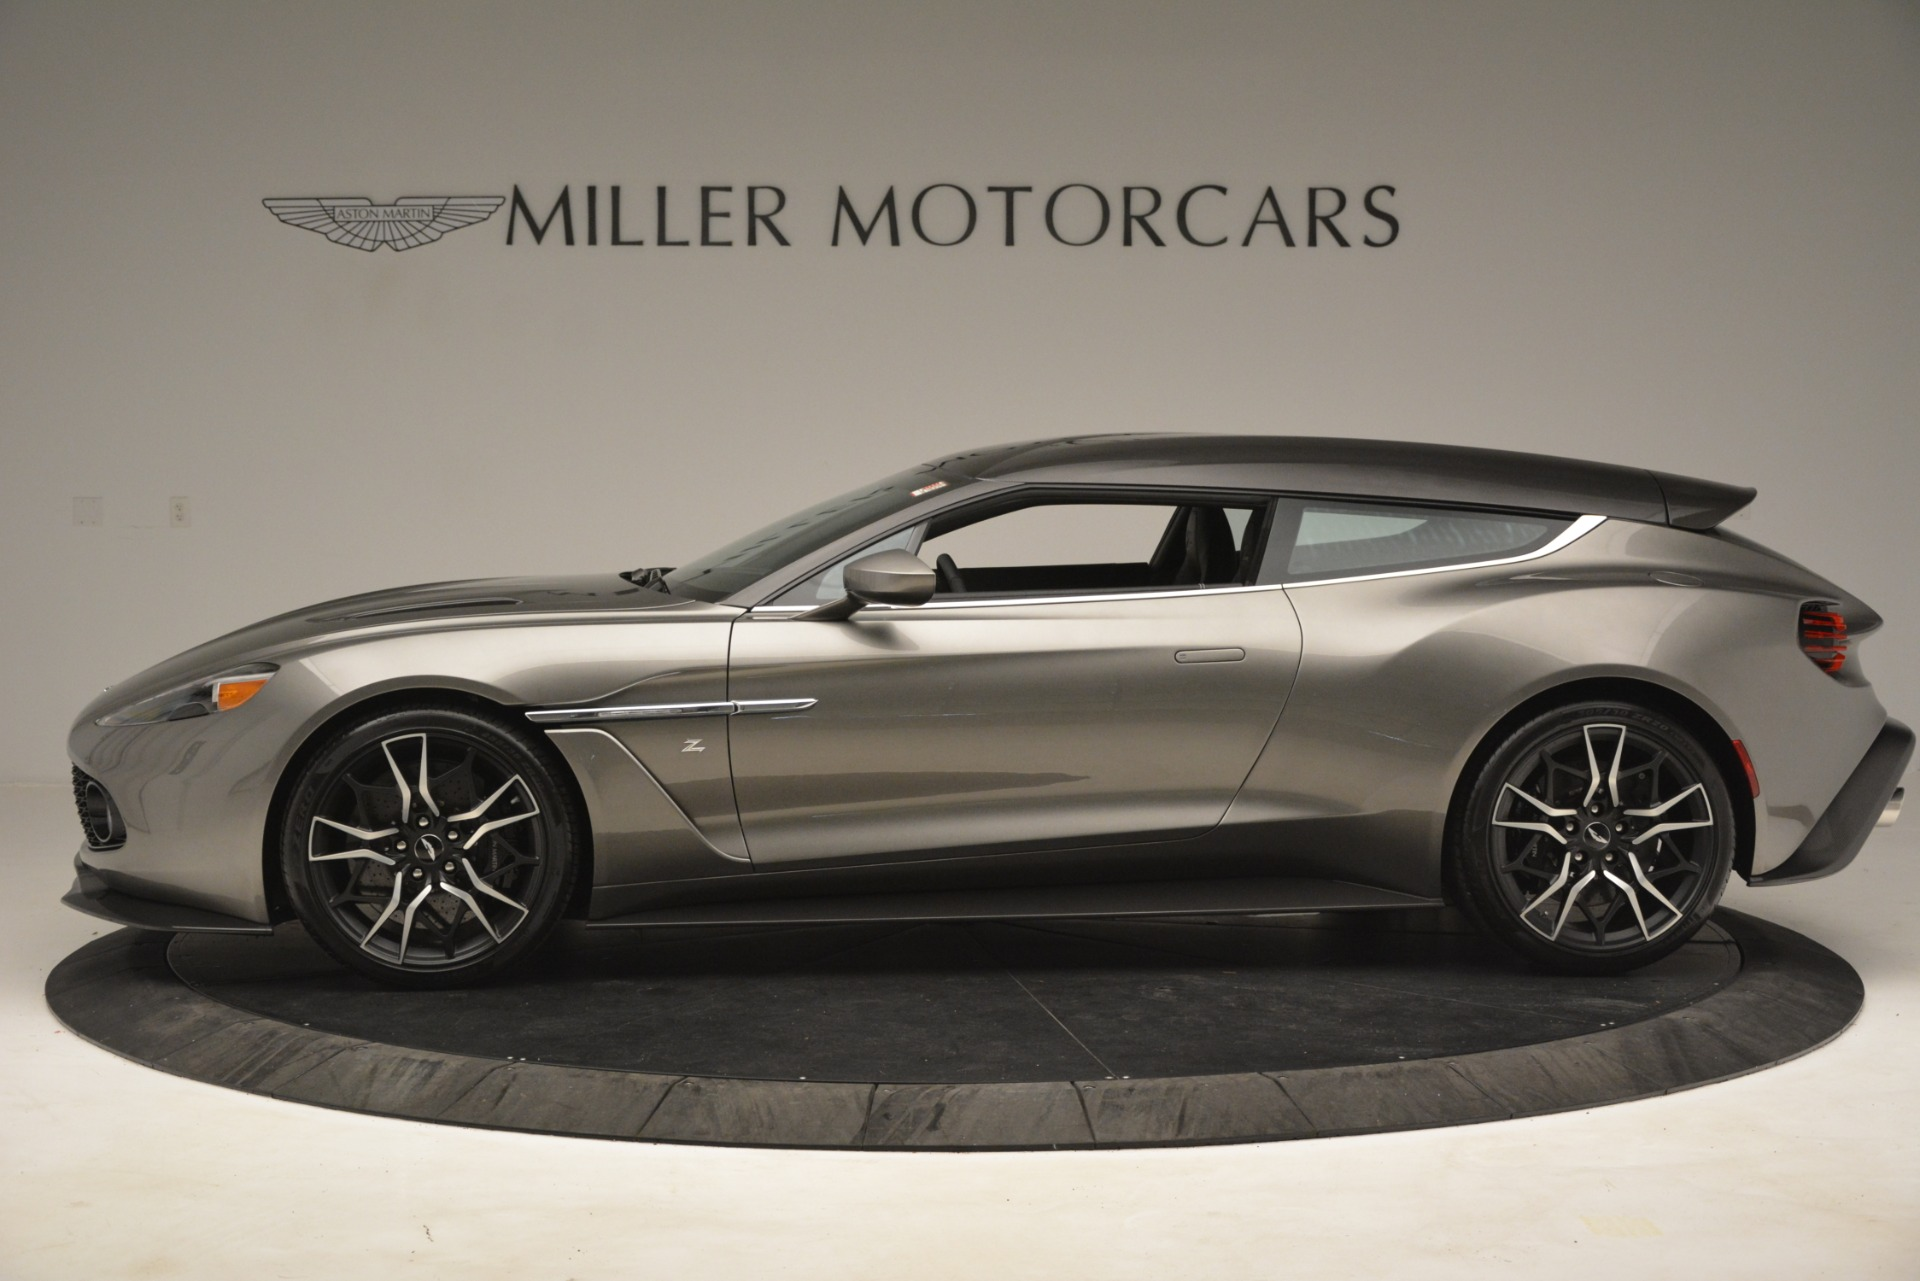 New 2019 Aston Martin Vanquish Zagato Shooting Brake For Sale 899131 In Greenwich, CT